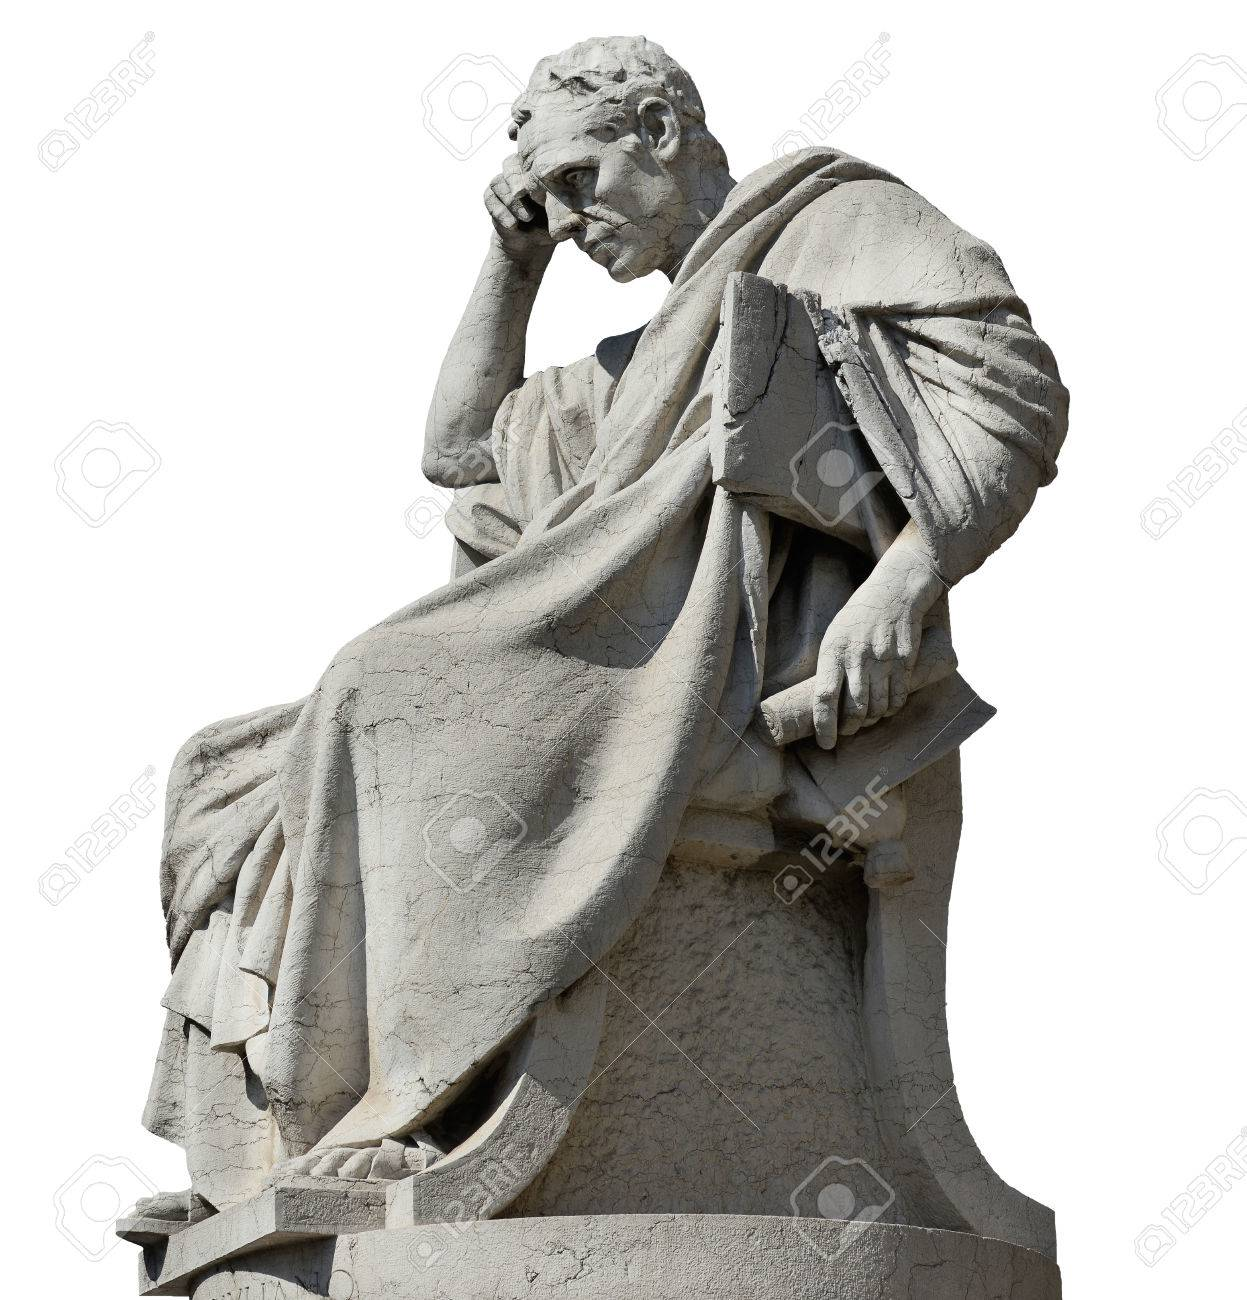 Julian the Jurist in the act of thinking statue, in front of the Old Palace of Justice in Rome (isolated on white background) - 81549098